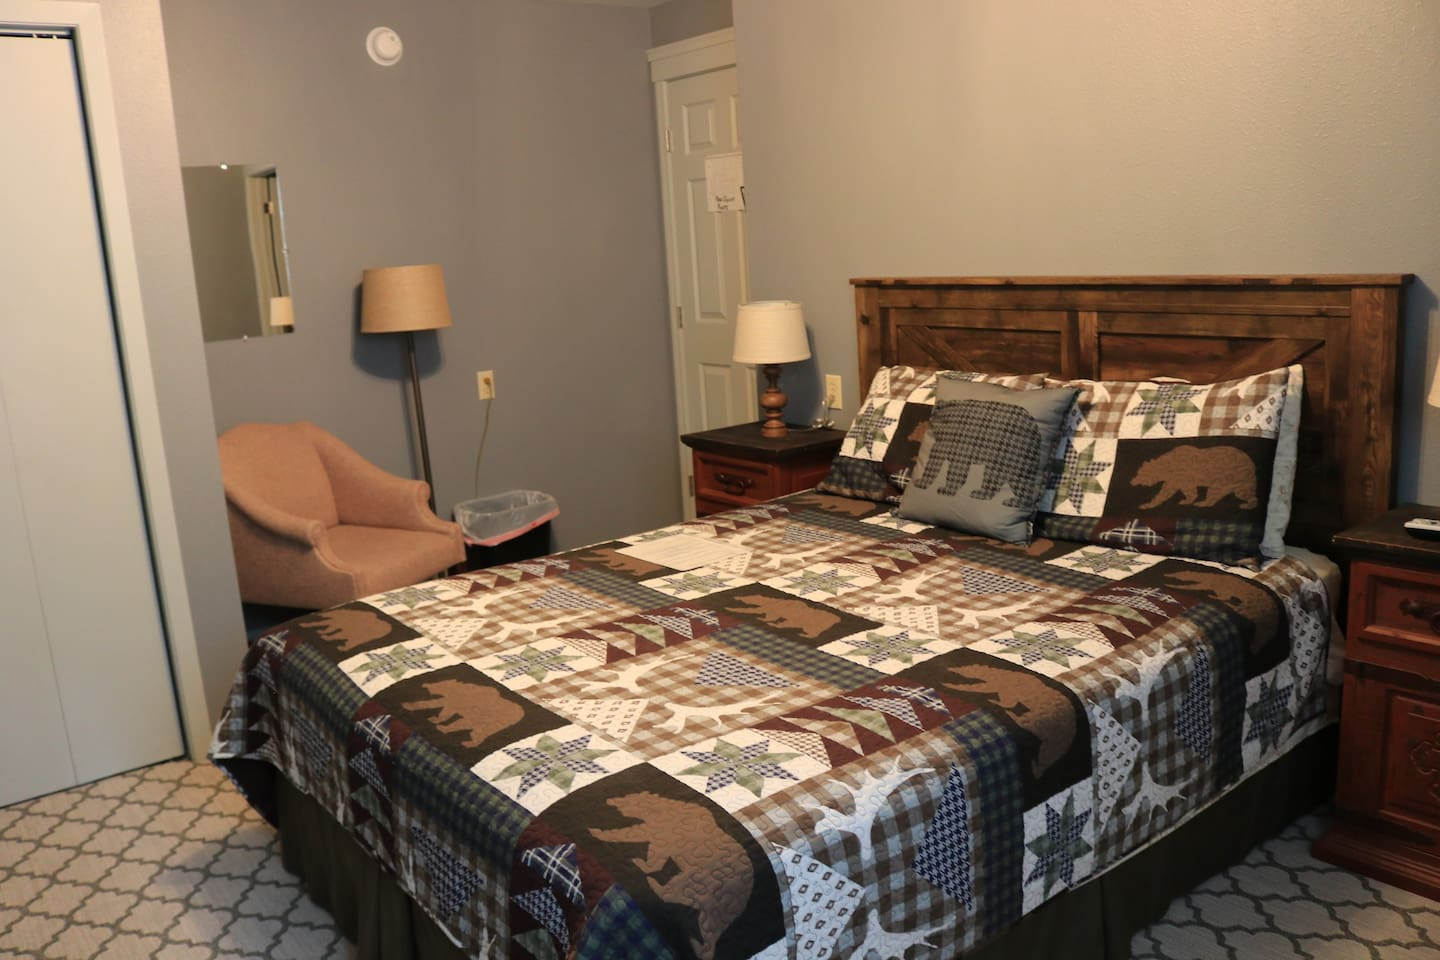 Room 6 is a cozy room perfect for a quiet get away. Room has a queen bed, 2 chairs for sitting, TV and in-suite bathroom.